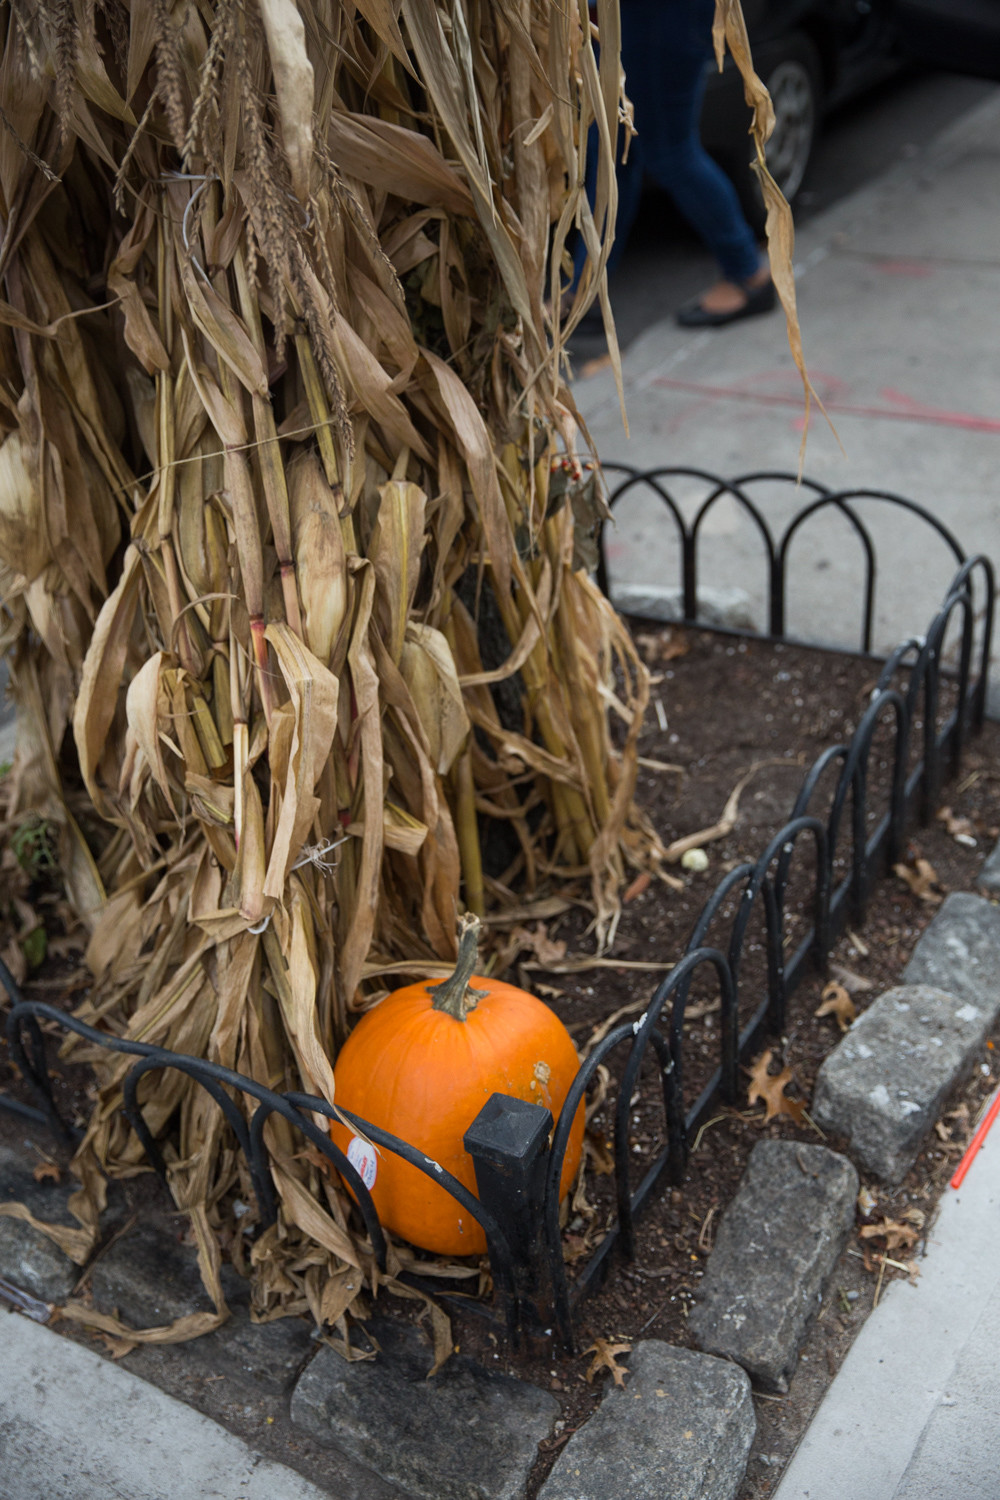 A lone pumpkin sits in the sidewalk planter on Riverdale Avenue that John's Botany Bay Florist fills with pumpkins every year to decorate the block. Several days before Halloween this year, all but two of the pumpkins disappeared.